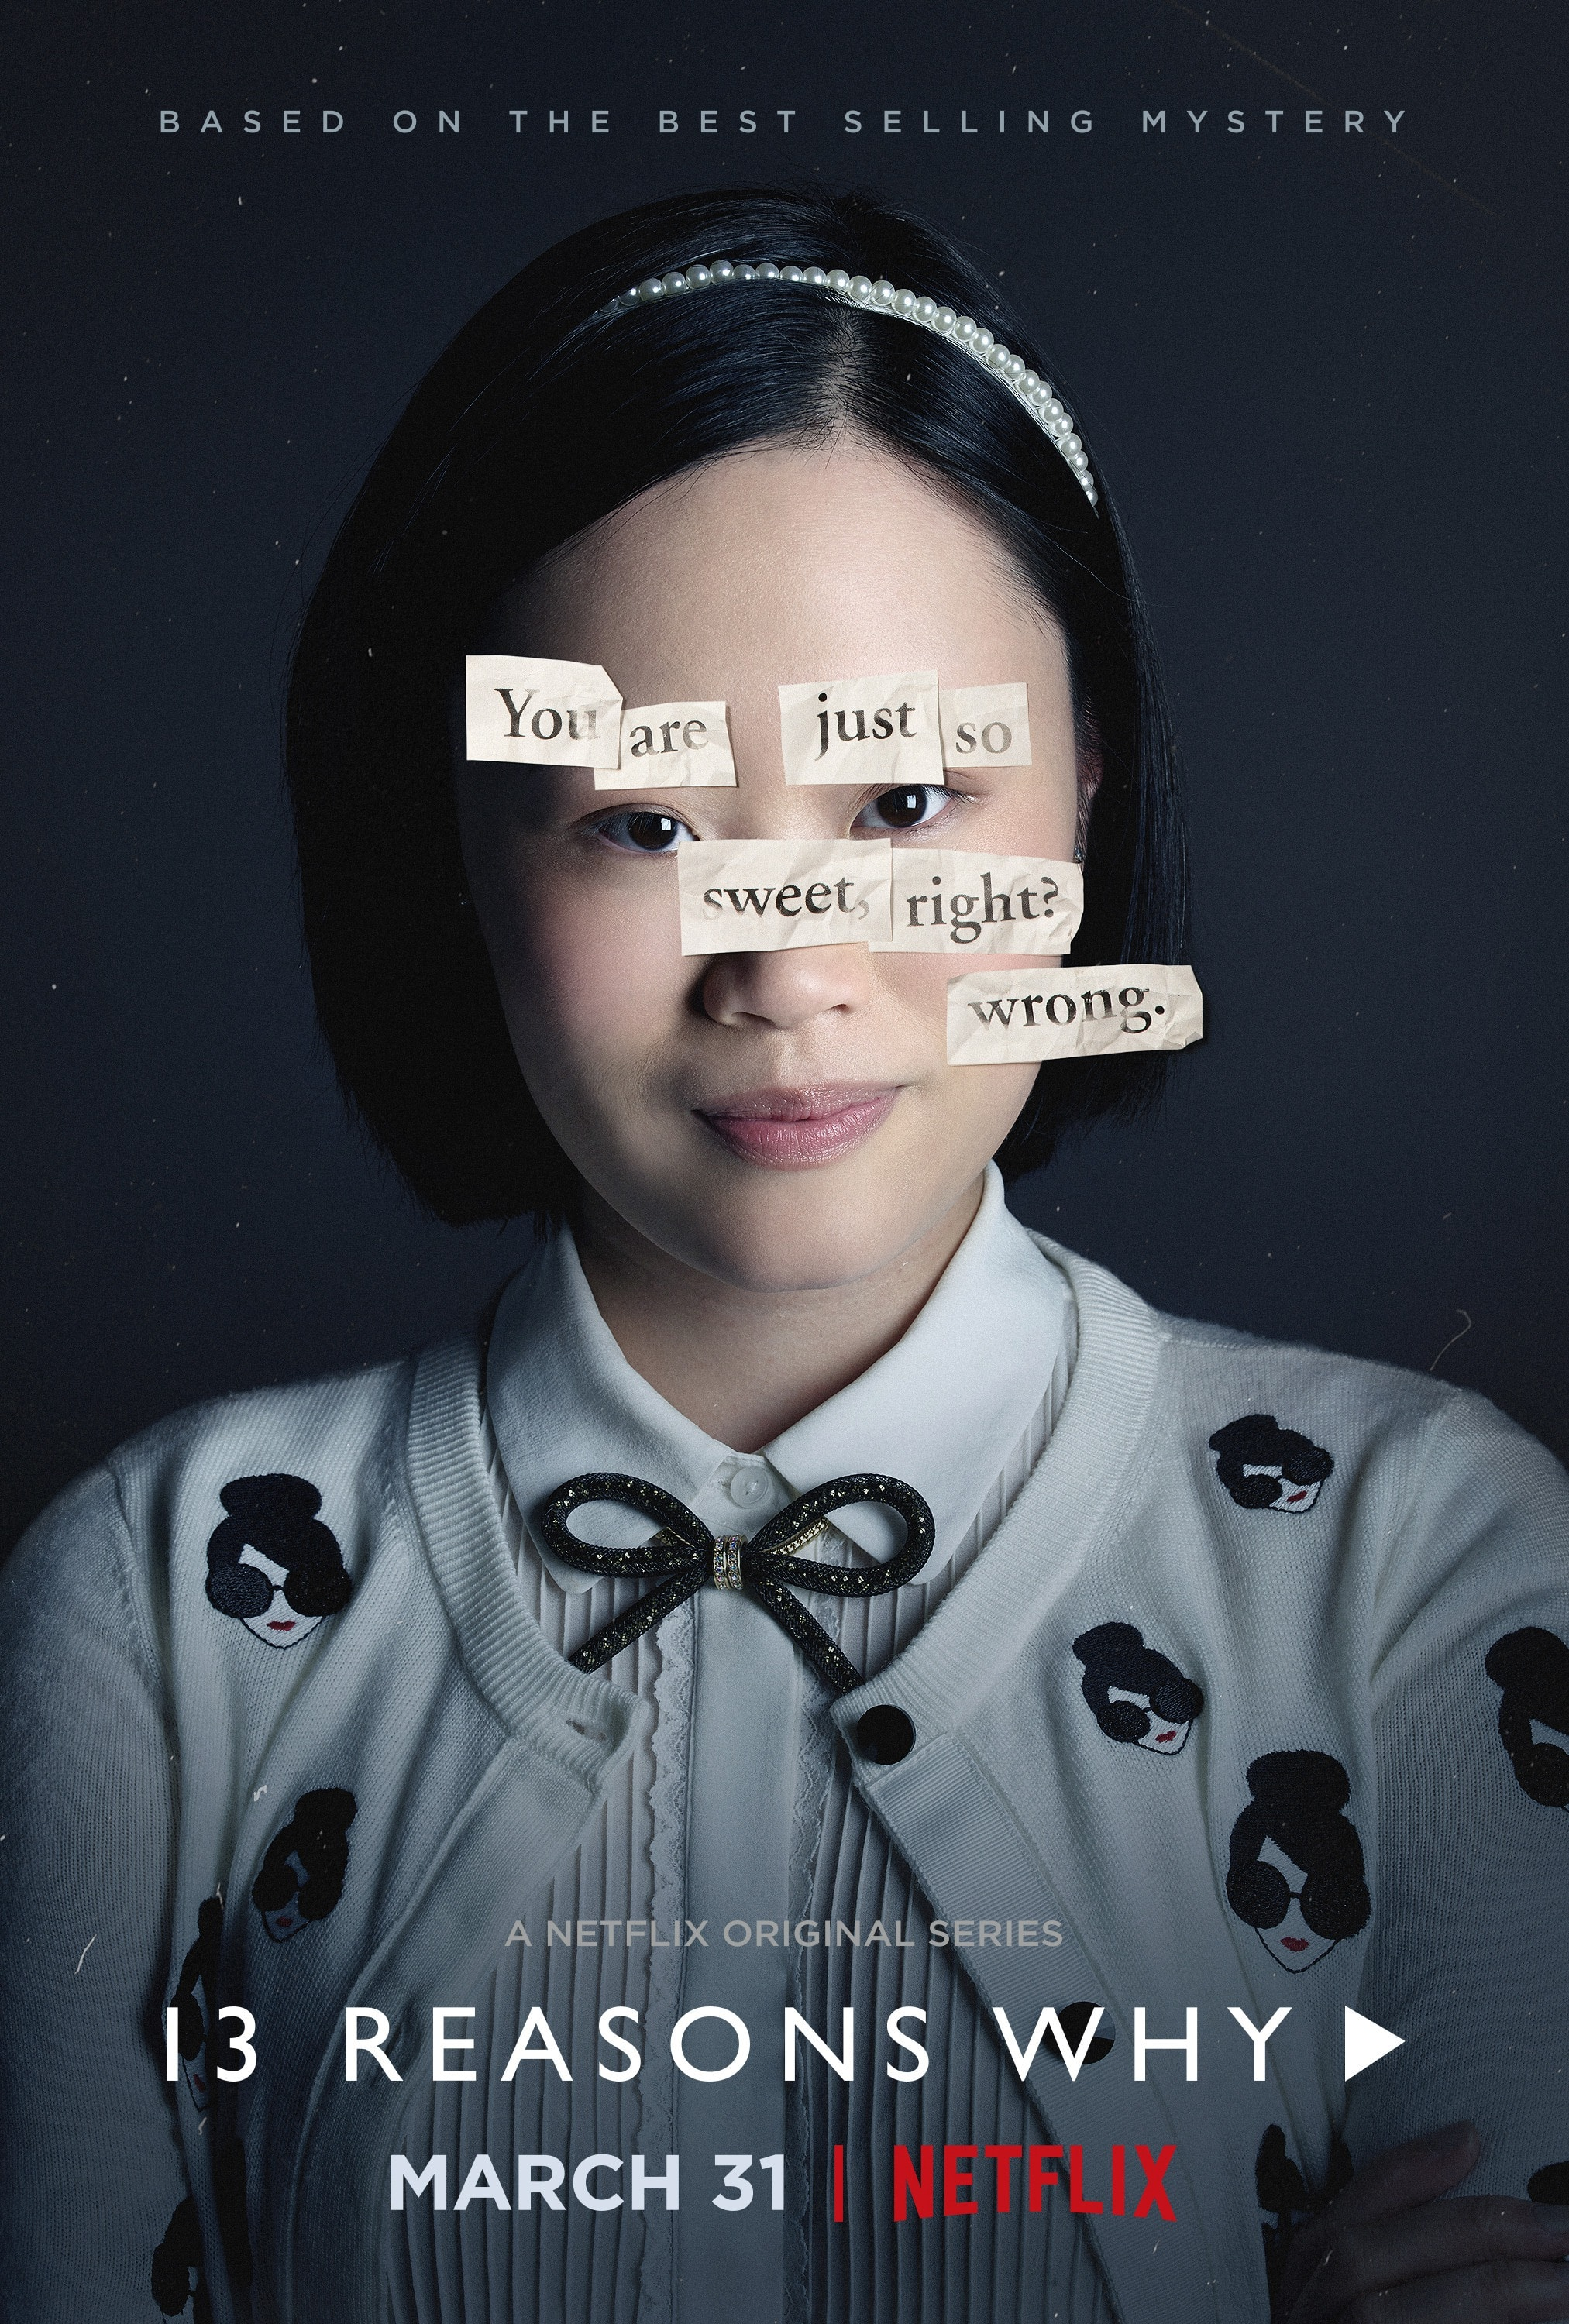 Courtney 13 reasons why poster